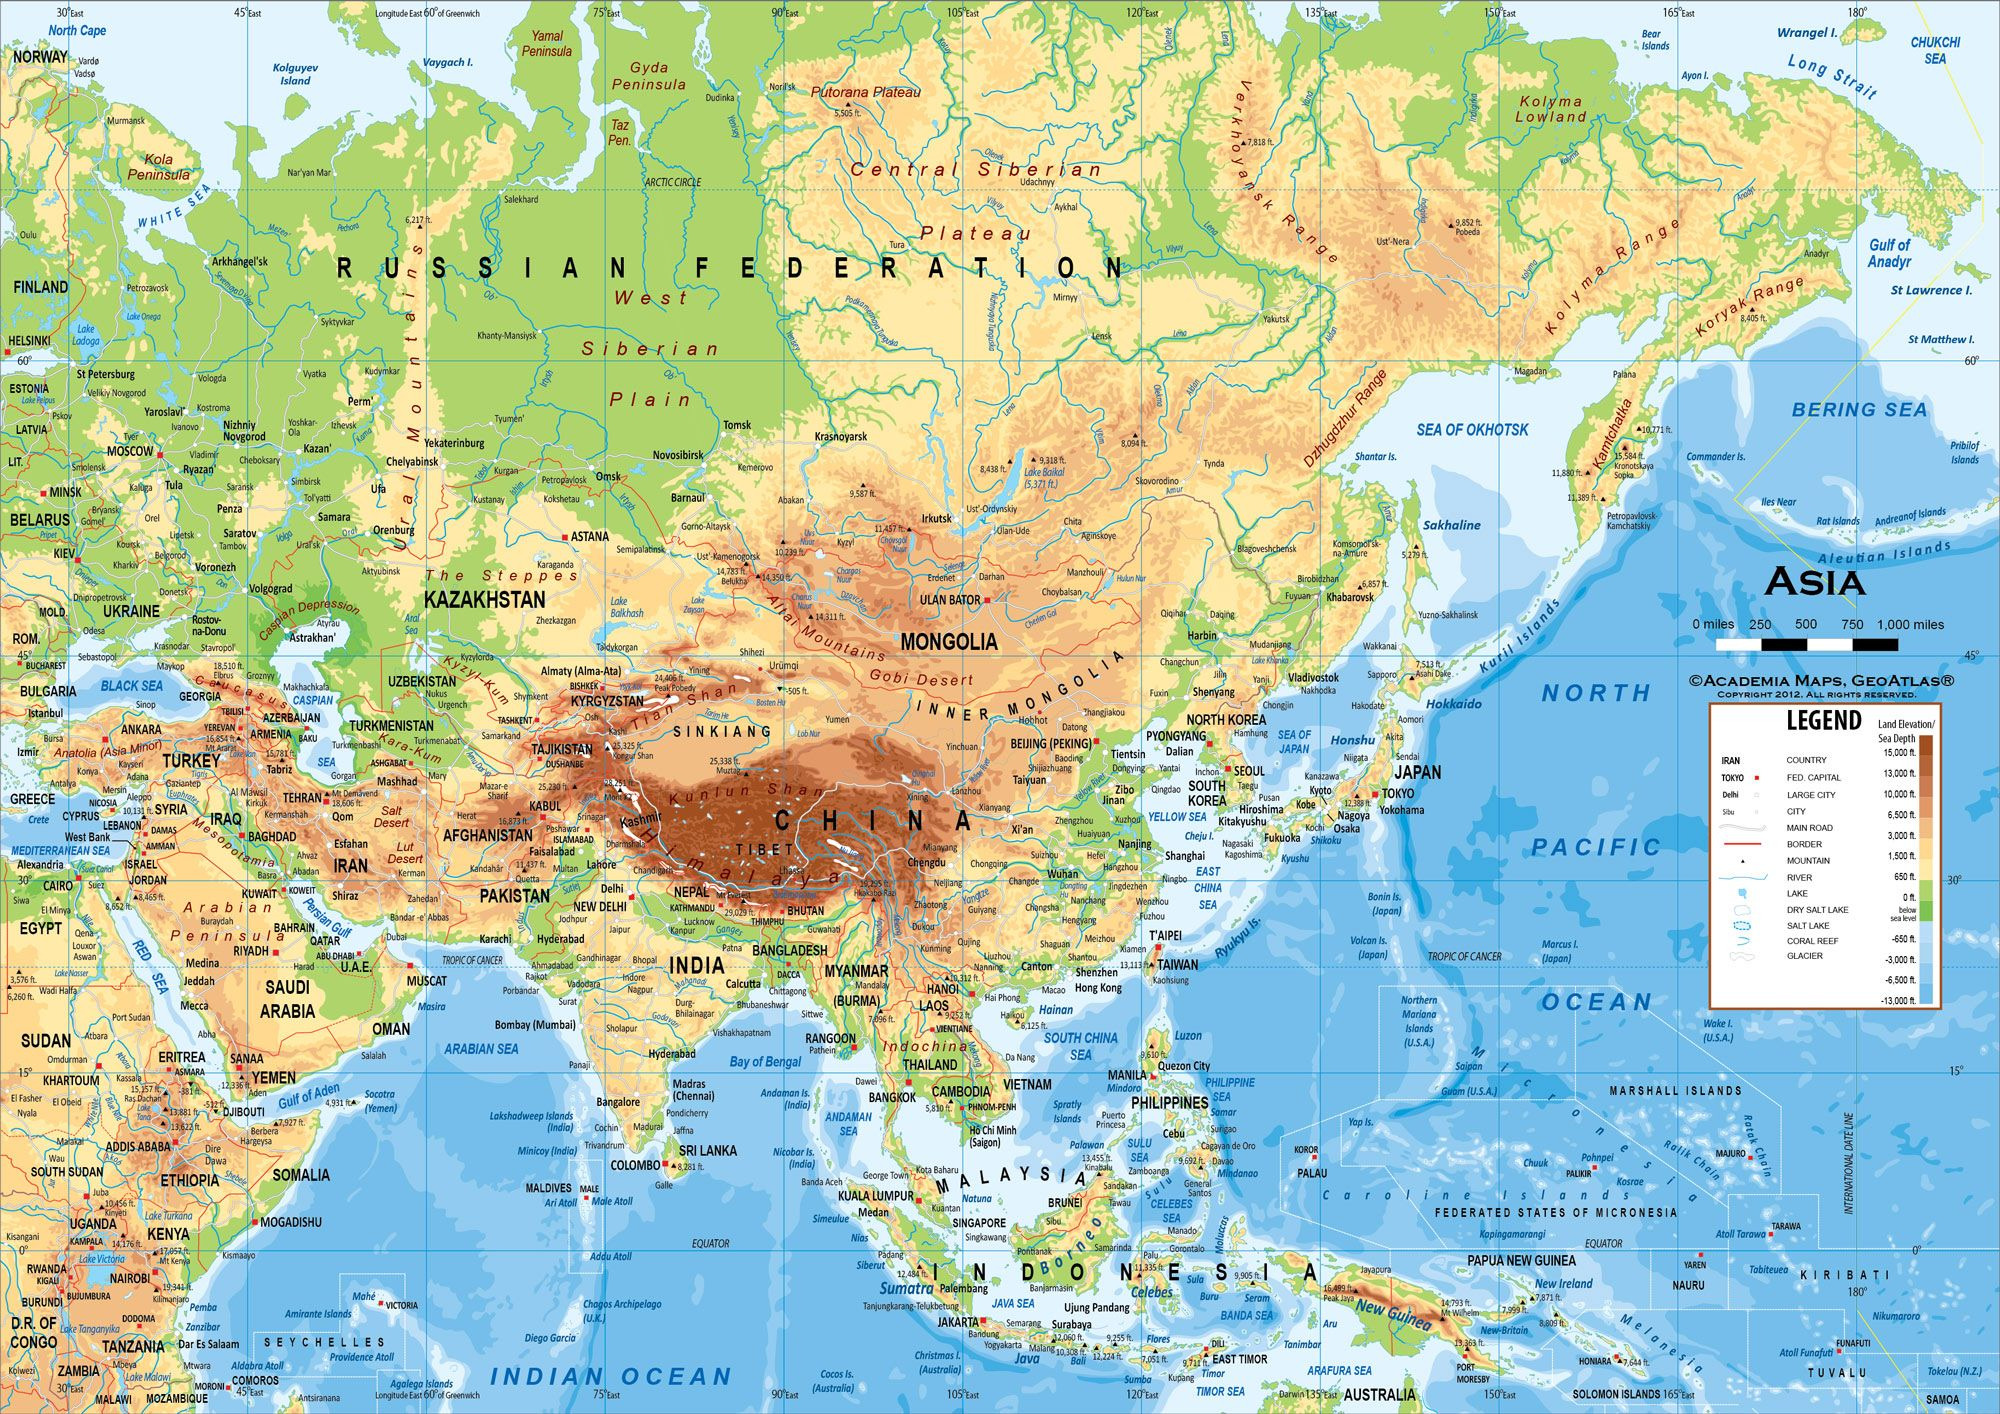 The Continent Of Asia Map.Continent Of Asia Wallpapers Top Free Continent Of Asia